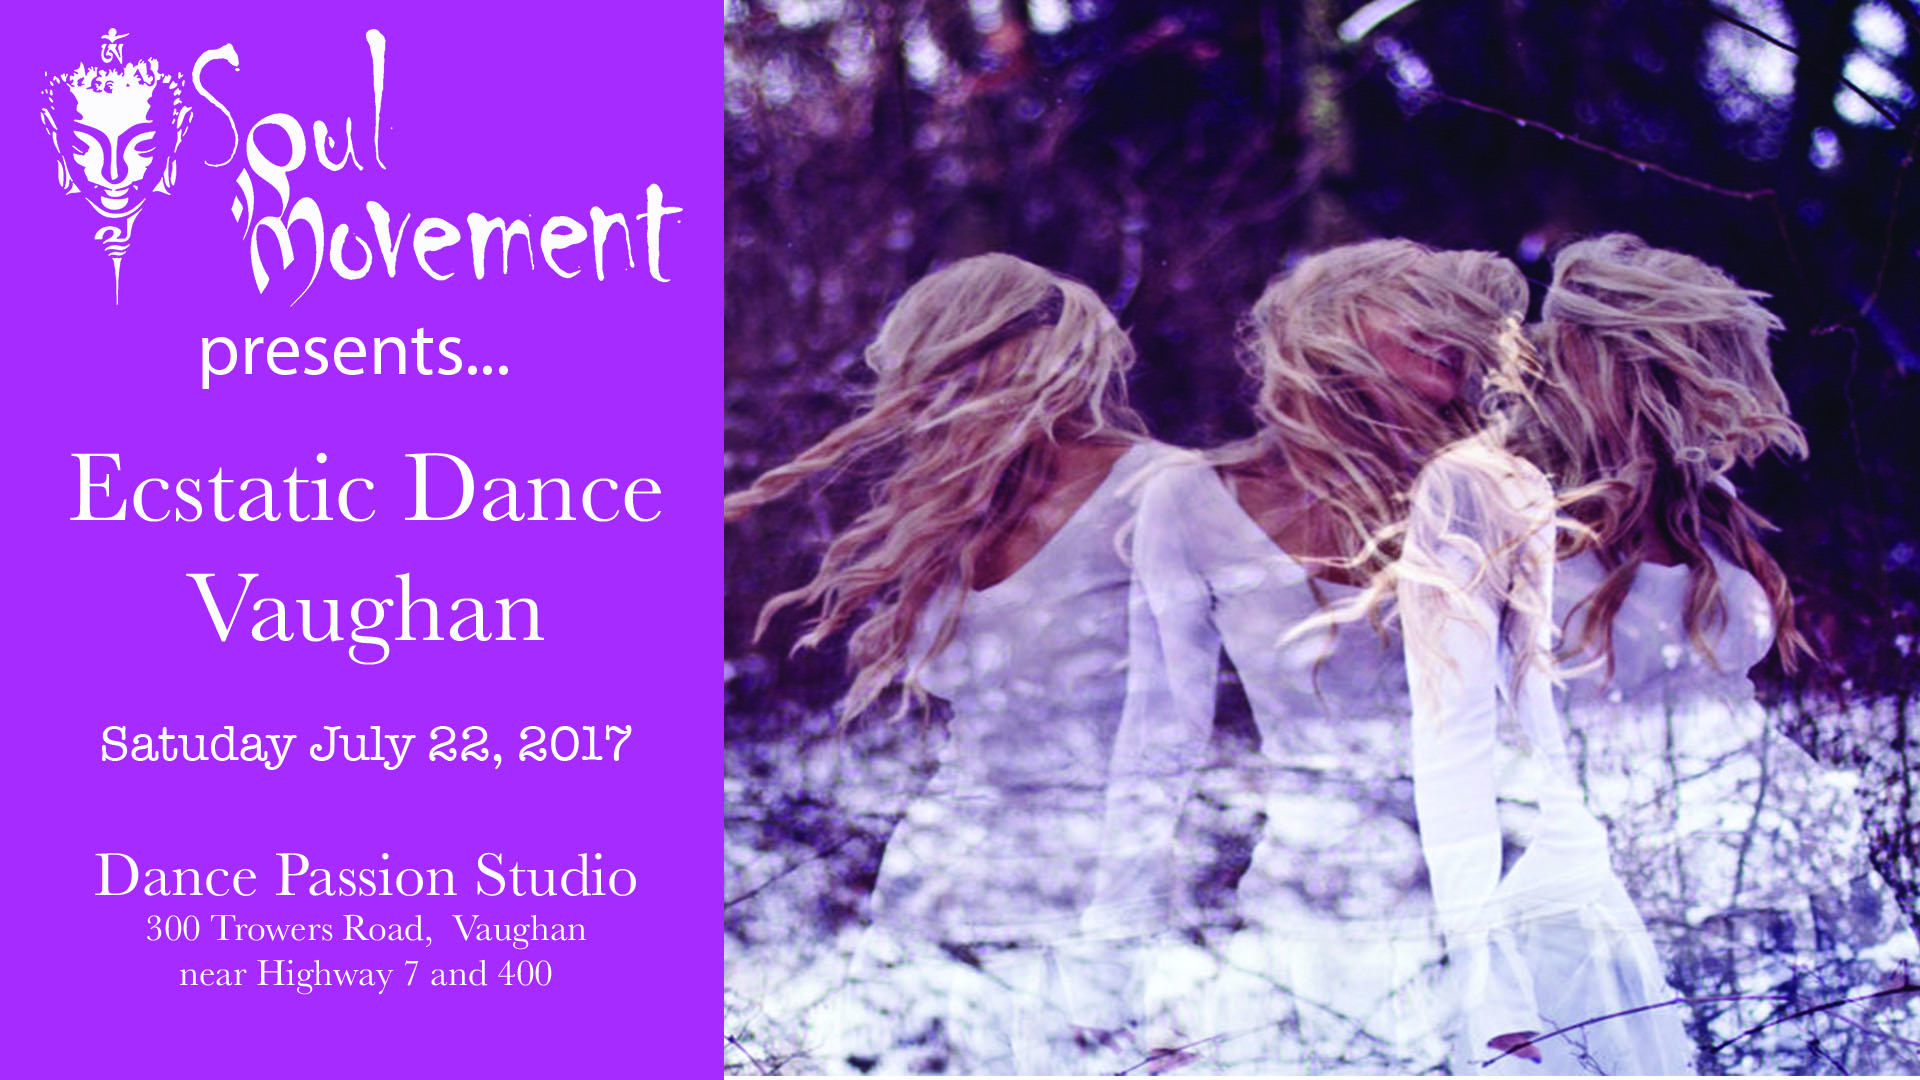 Soul Movement presents Ecstatic Dance Vaughan